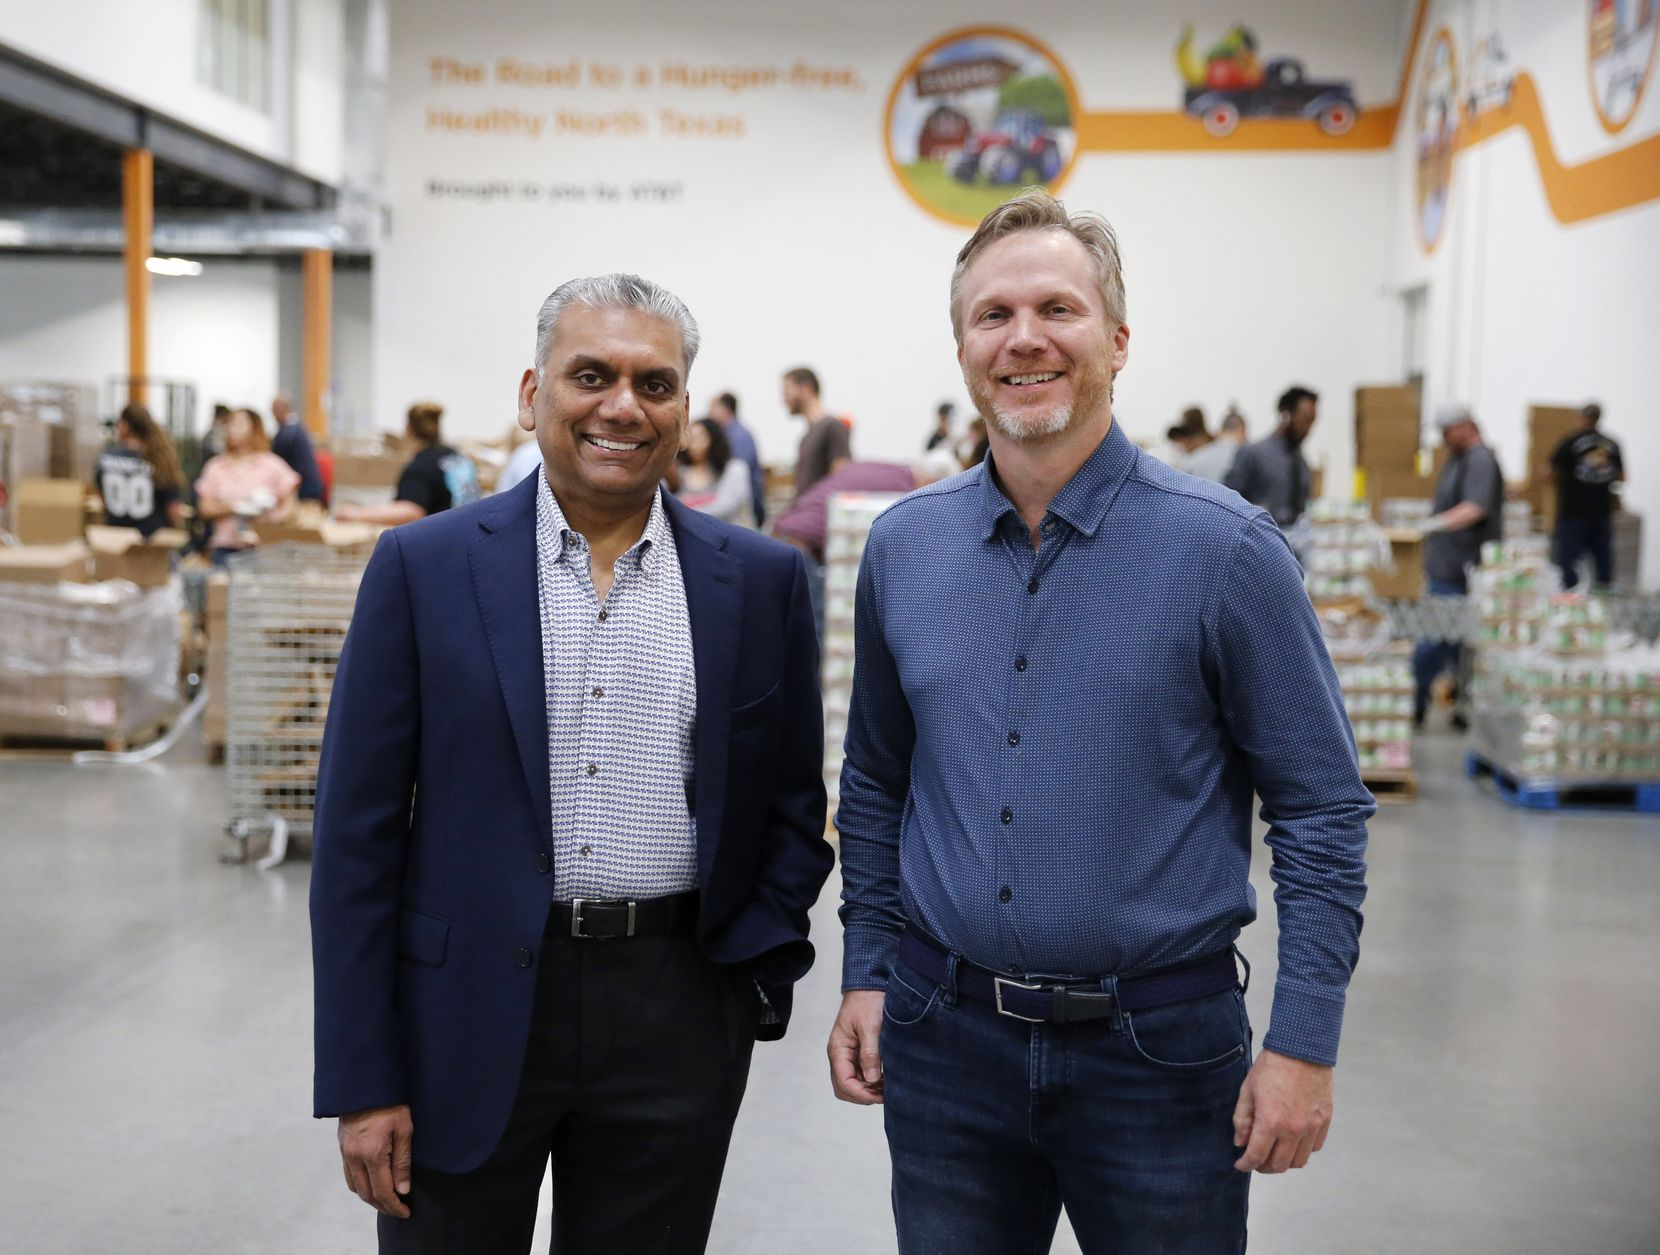 Anurag Jain, chairman of the North Texas Food Bank, posed with Shiftsmart president Patrick Brandt at the North Texas Food Bank in Plano in March.